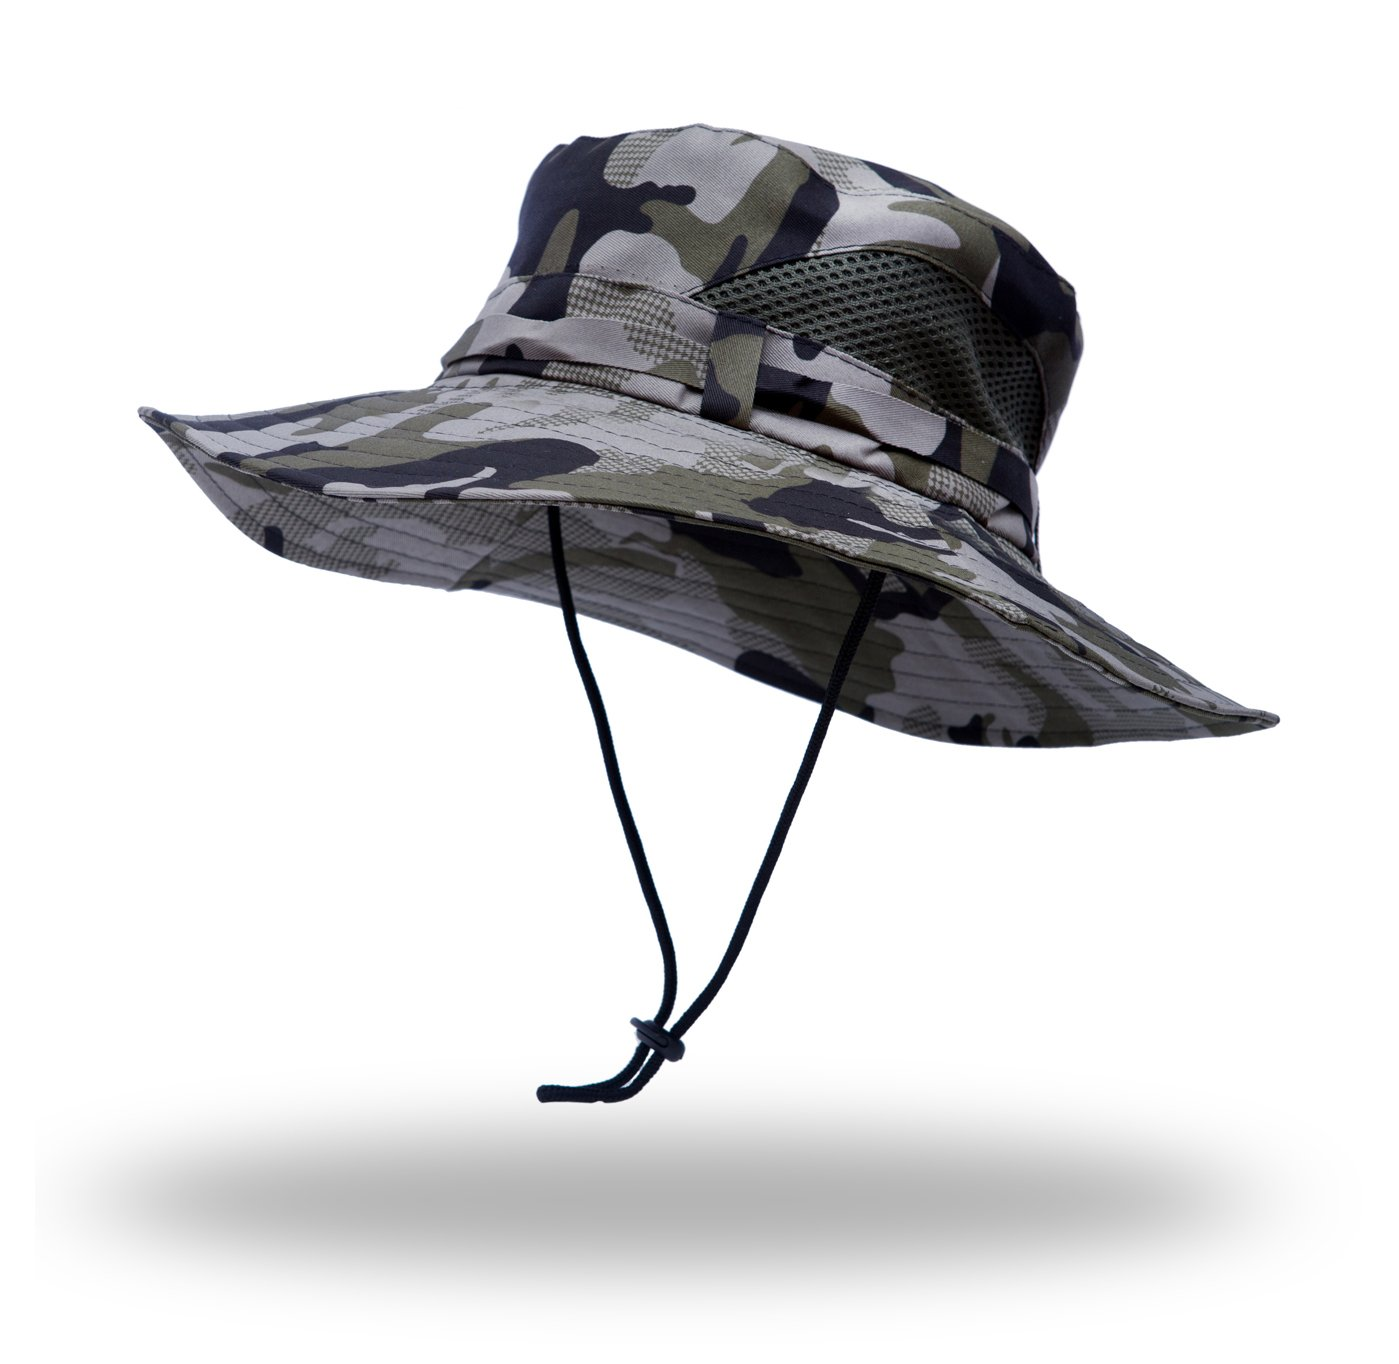 Anleolife Grey Camo Jungle Boonie Hat Travel Biking Boating Hiking Beach Vacation Bucket Cap